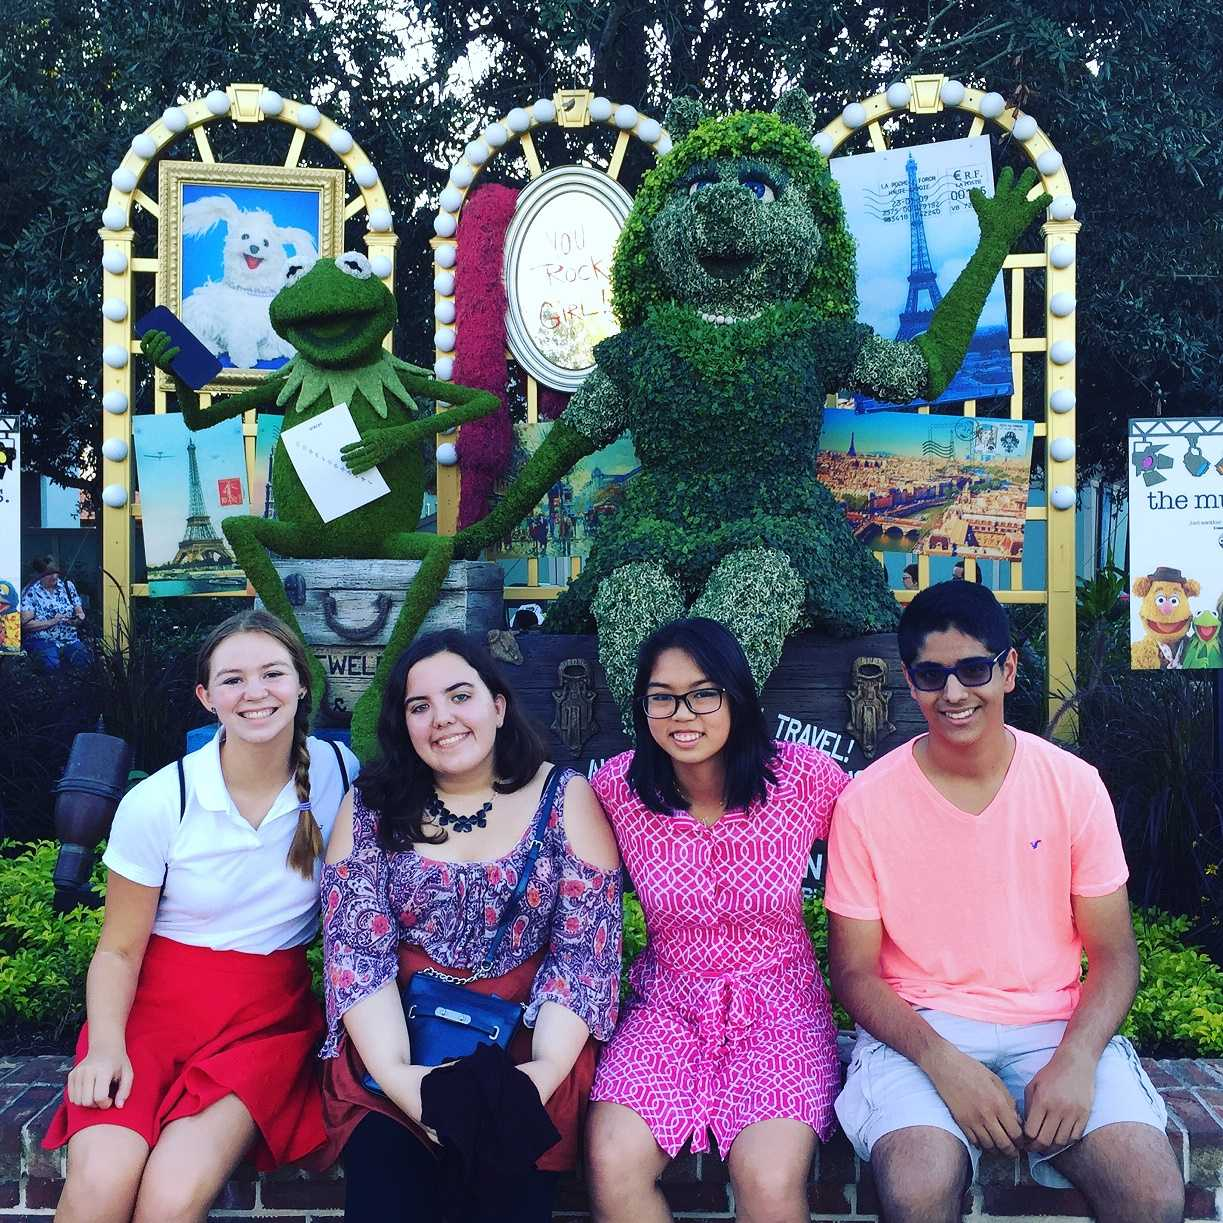 """A PICK WITH """"MOI"""": You can expect different photo ops throughout the shopping area. Here, we managed to snag a pick with Kermit the Frog and Miss Piggy. From left: Emma Edmund '18, Dina Al-Hassani '16, Samantha Tun '17 and Arjun Gandhi '18."""